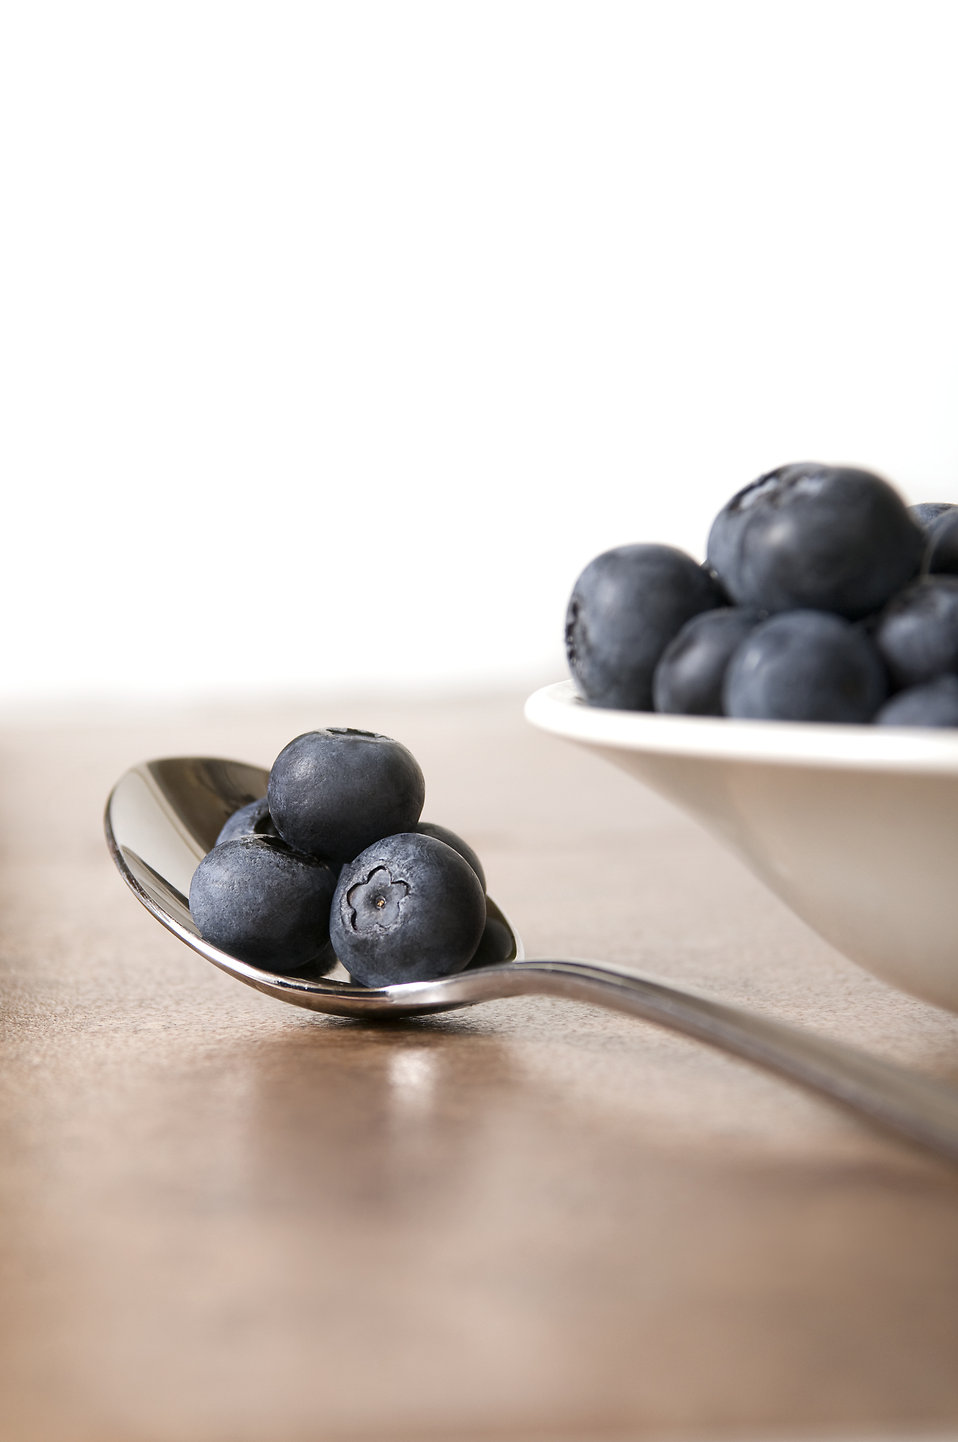 A bowl of and spoonful of blueberries : Free Stock Photo